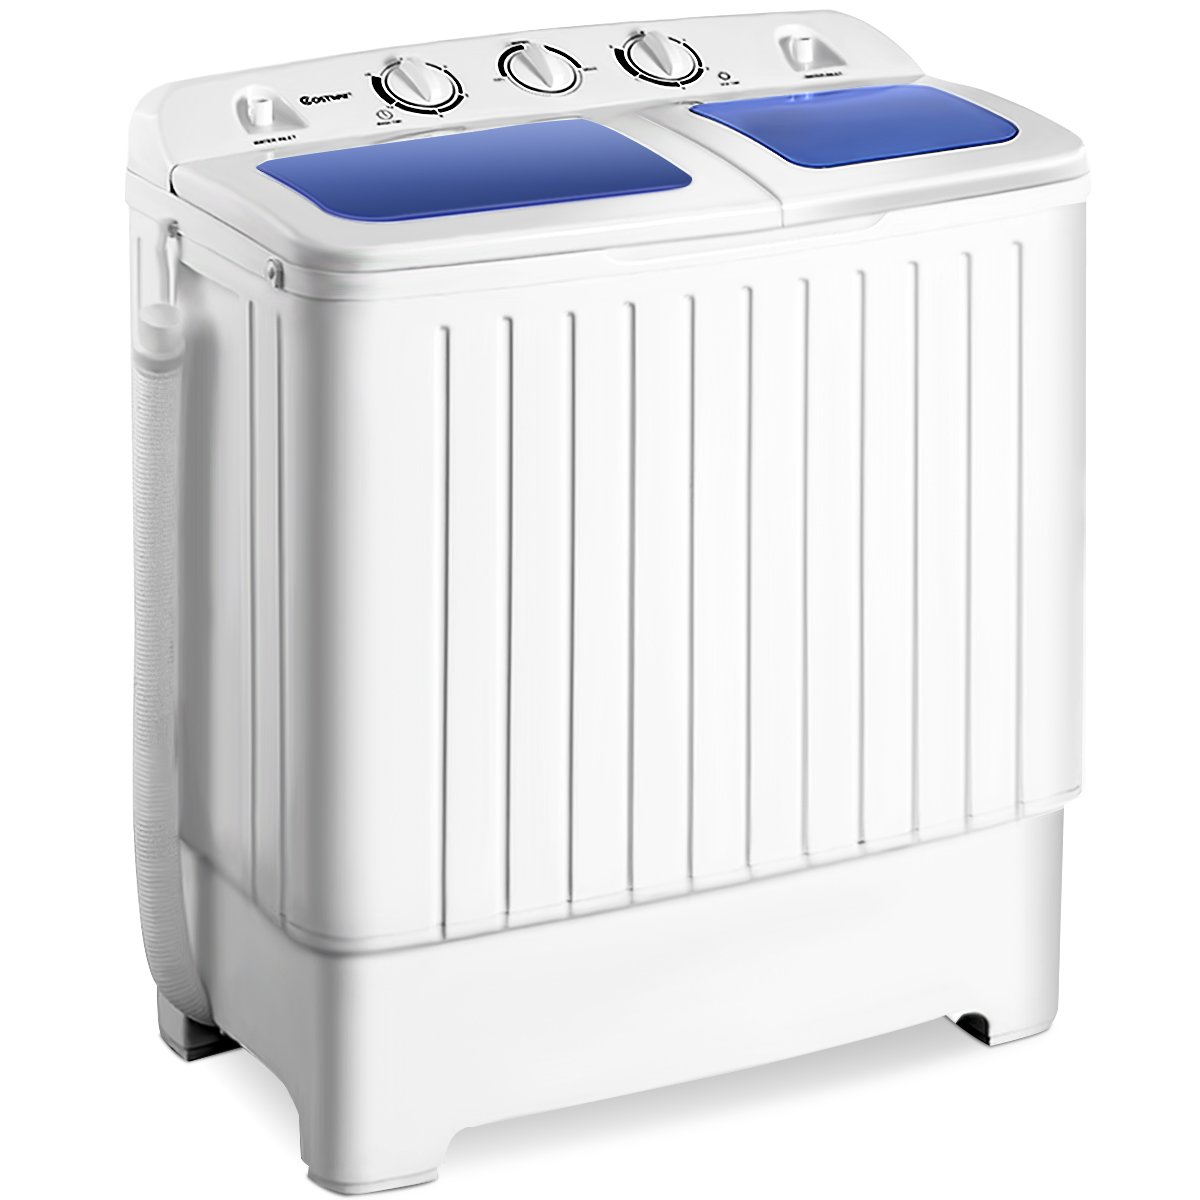 Giantex Portable Mini Compact Twin Tub Washing Machine 17.6lbs Washer Spain Spinner, Blue+ White EP21684